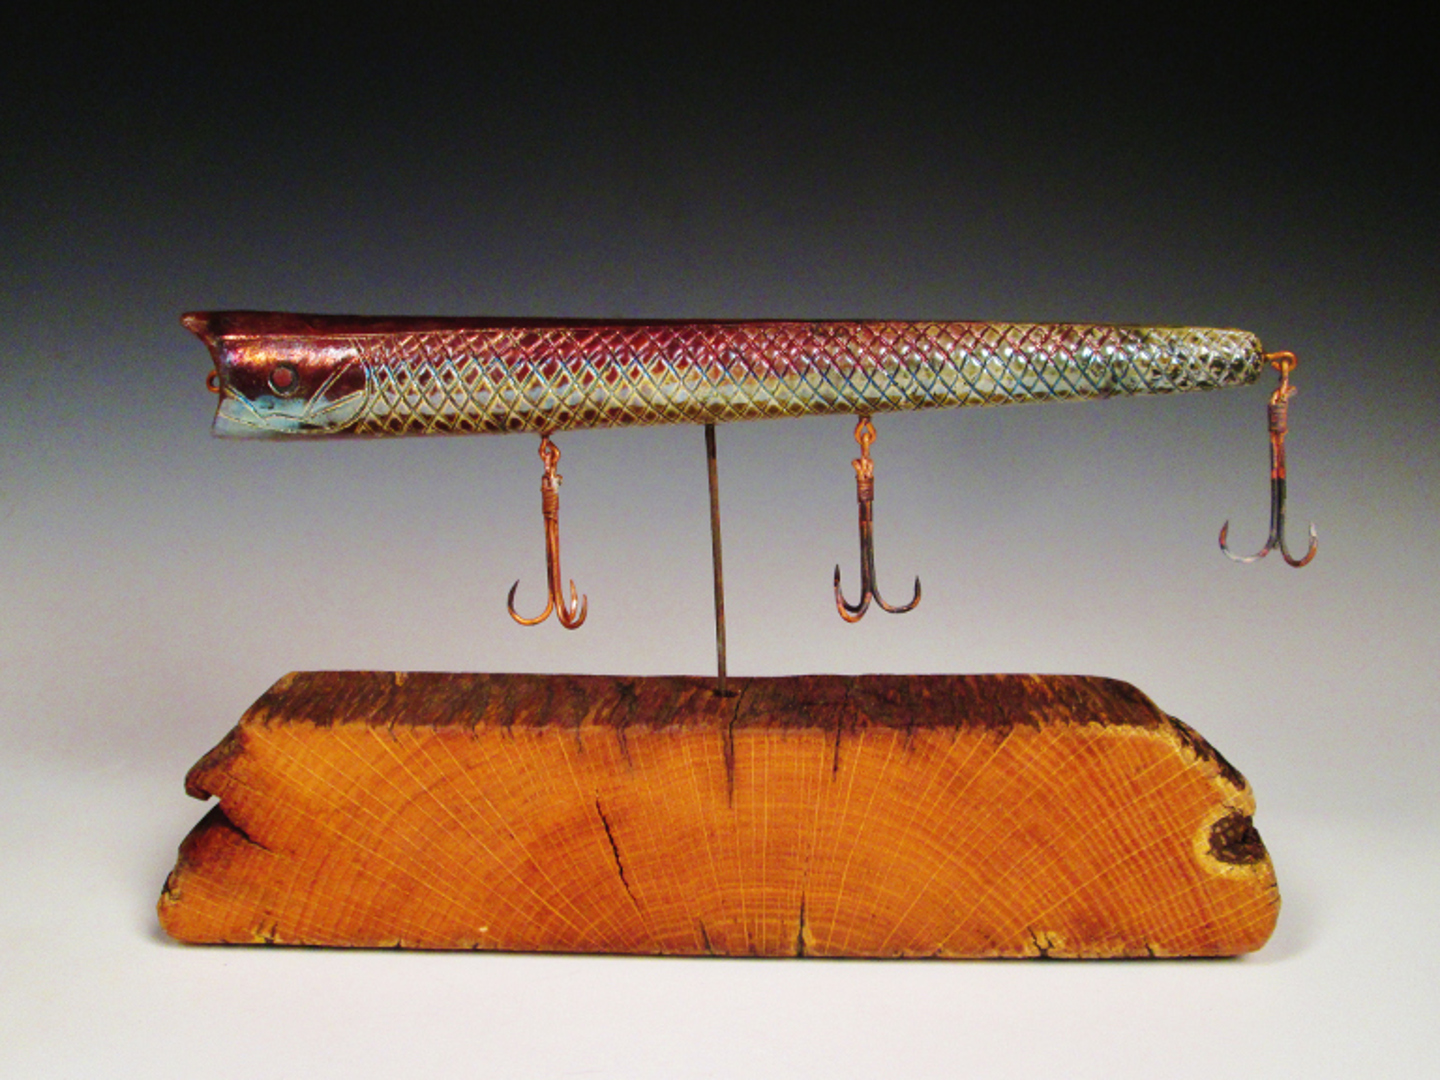 Mounted Lure  10x5x3  Ceramic and Reclaimed Material $250.JPG